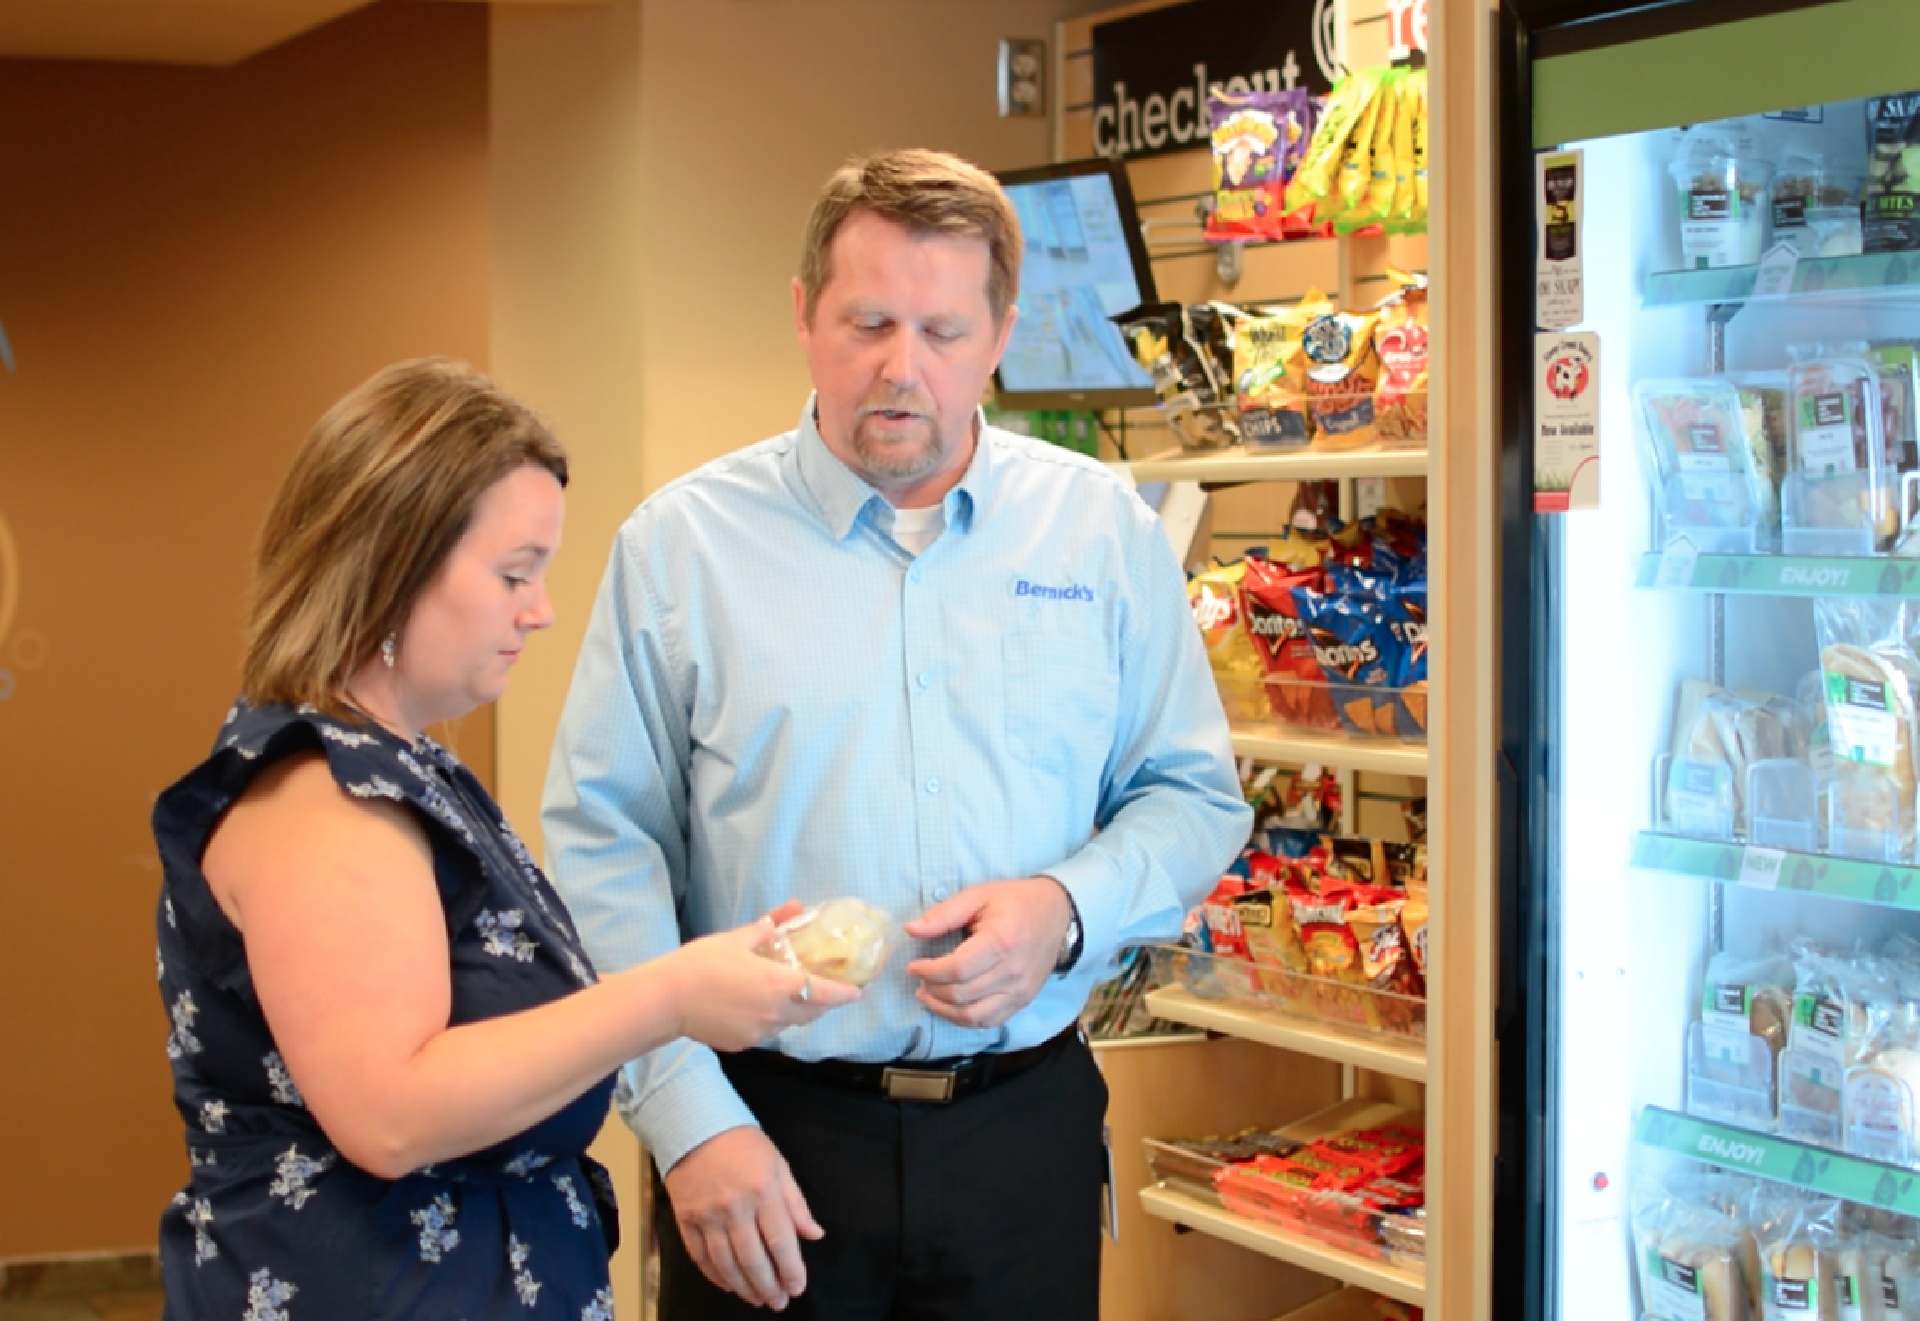 Bernick's Employee Treating Guest at Micro Market